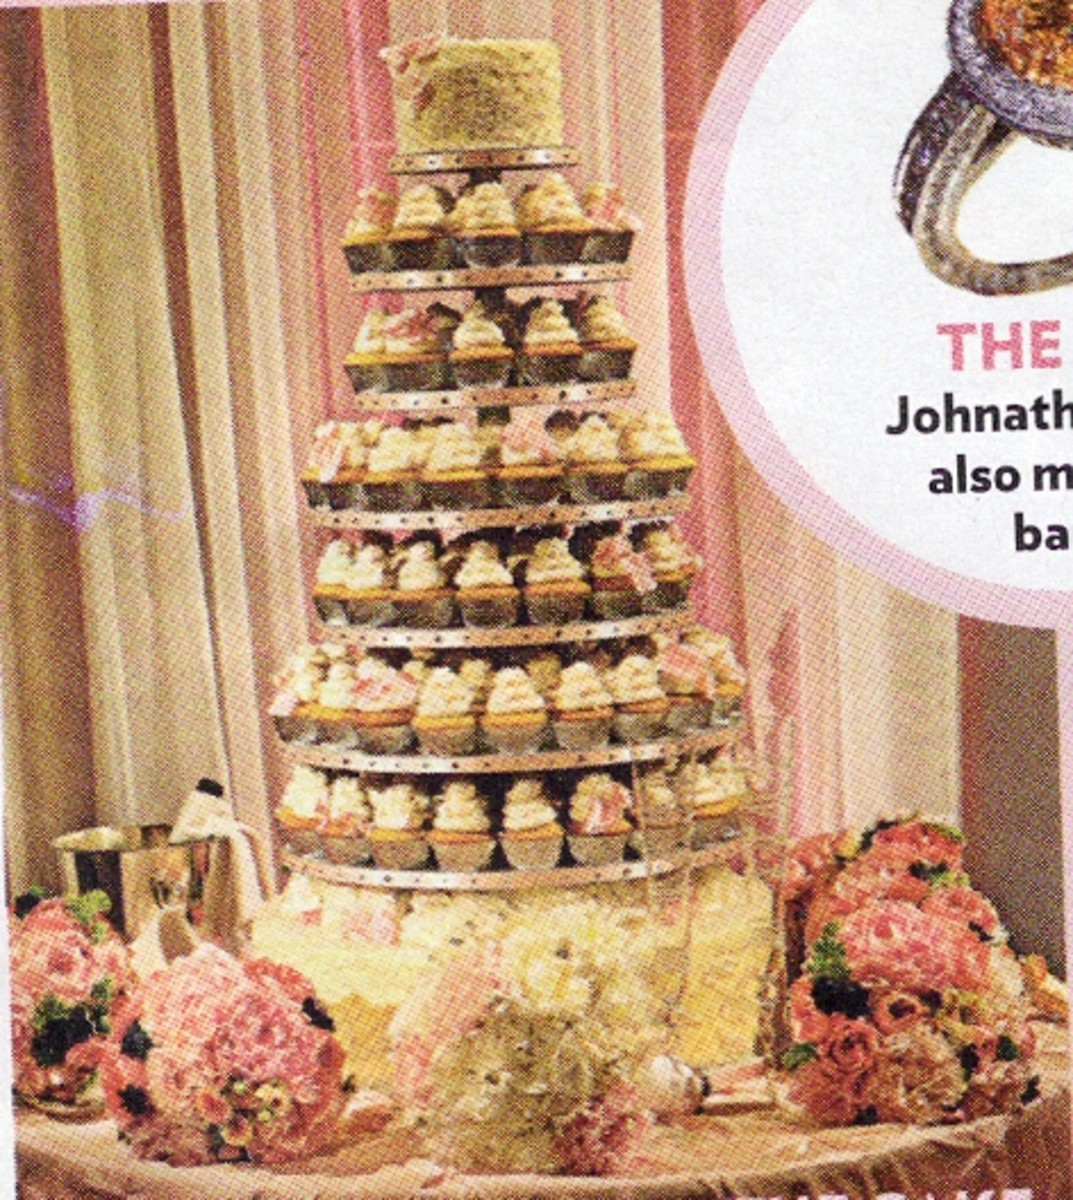 Carrie Underwood and Mike Fisher's Wedding Cupcake Tower